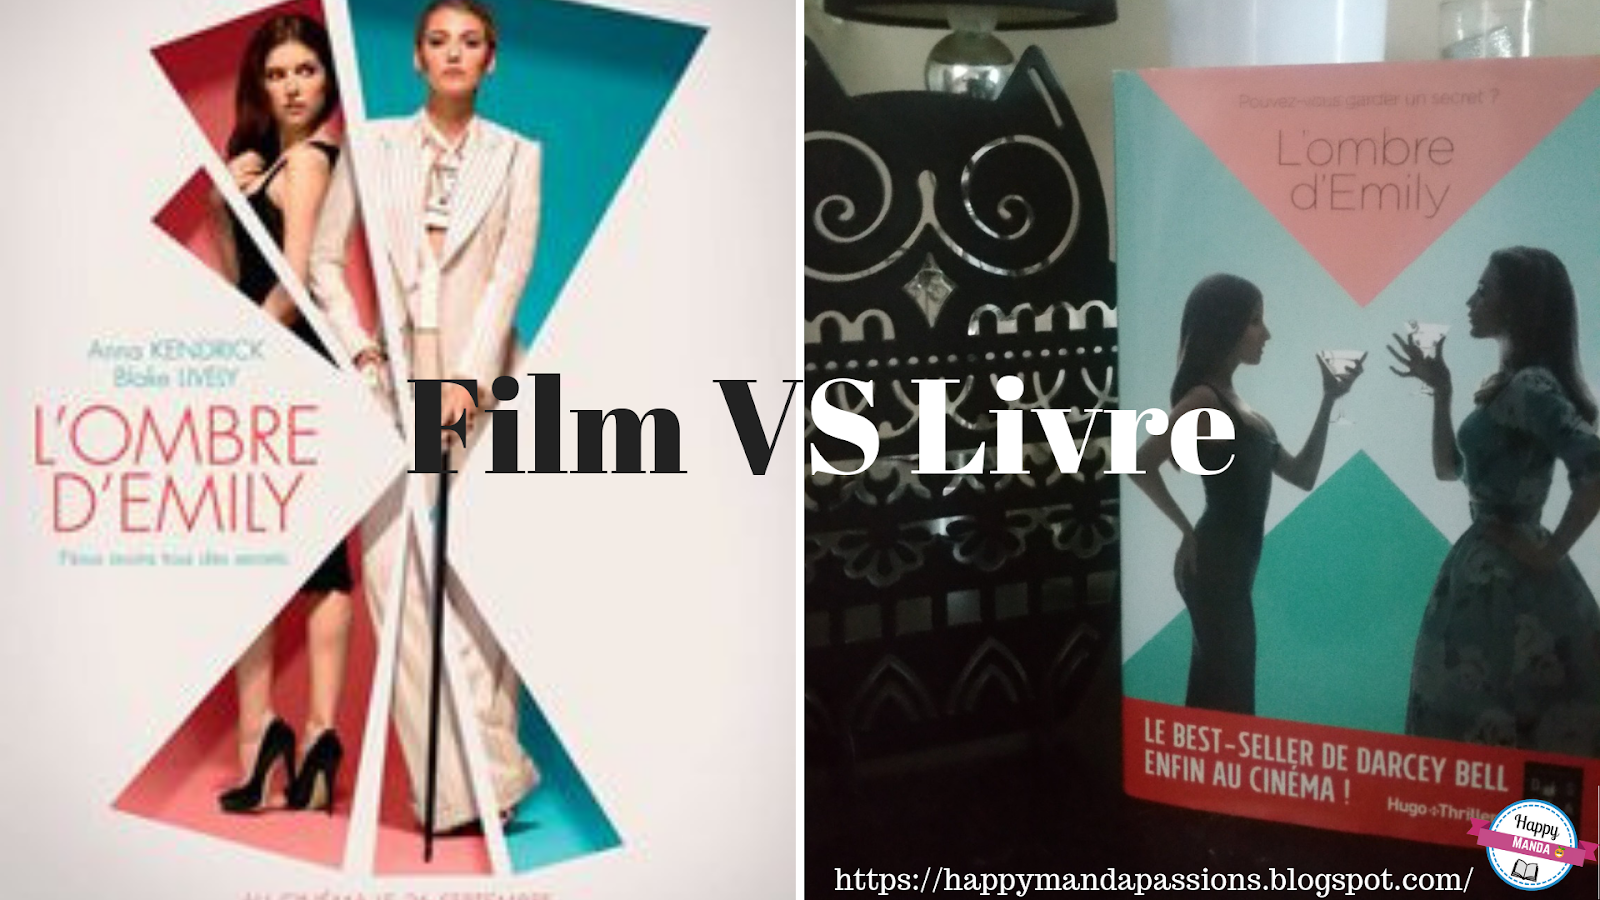 La Chambre Secrete Film Disparue Ou L Ombre D Emily Darcey Bell Film Vs Livre Happy